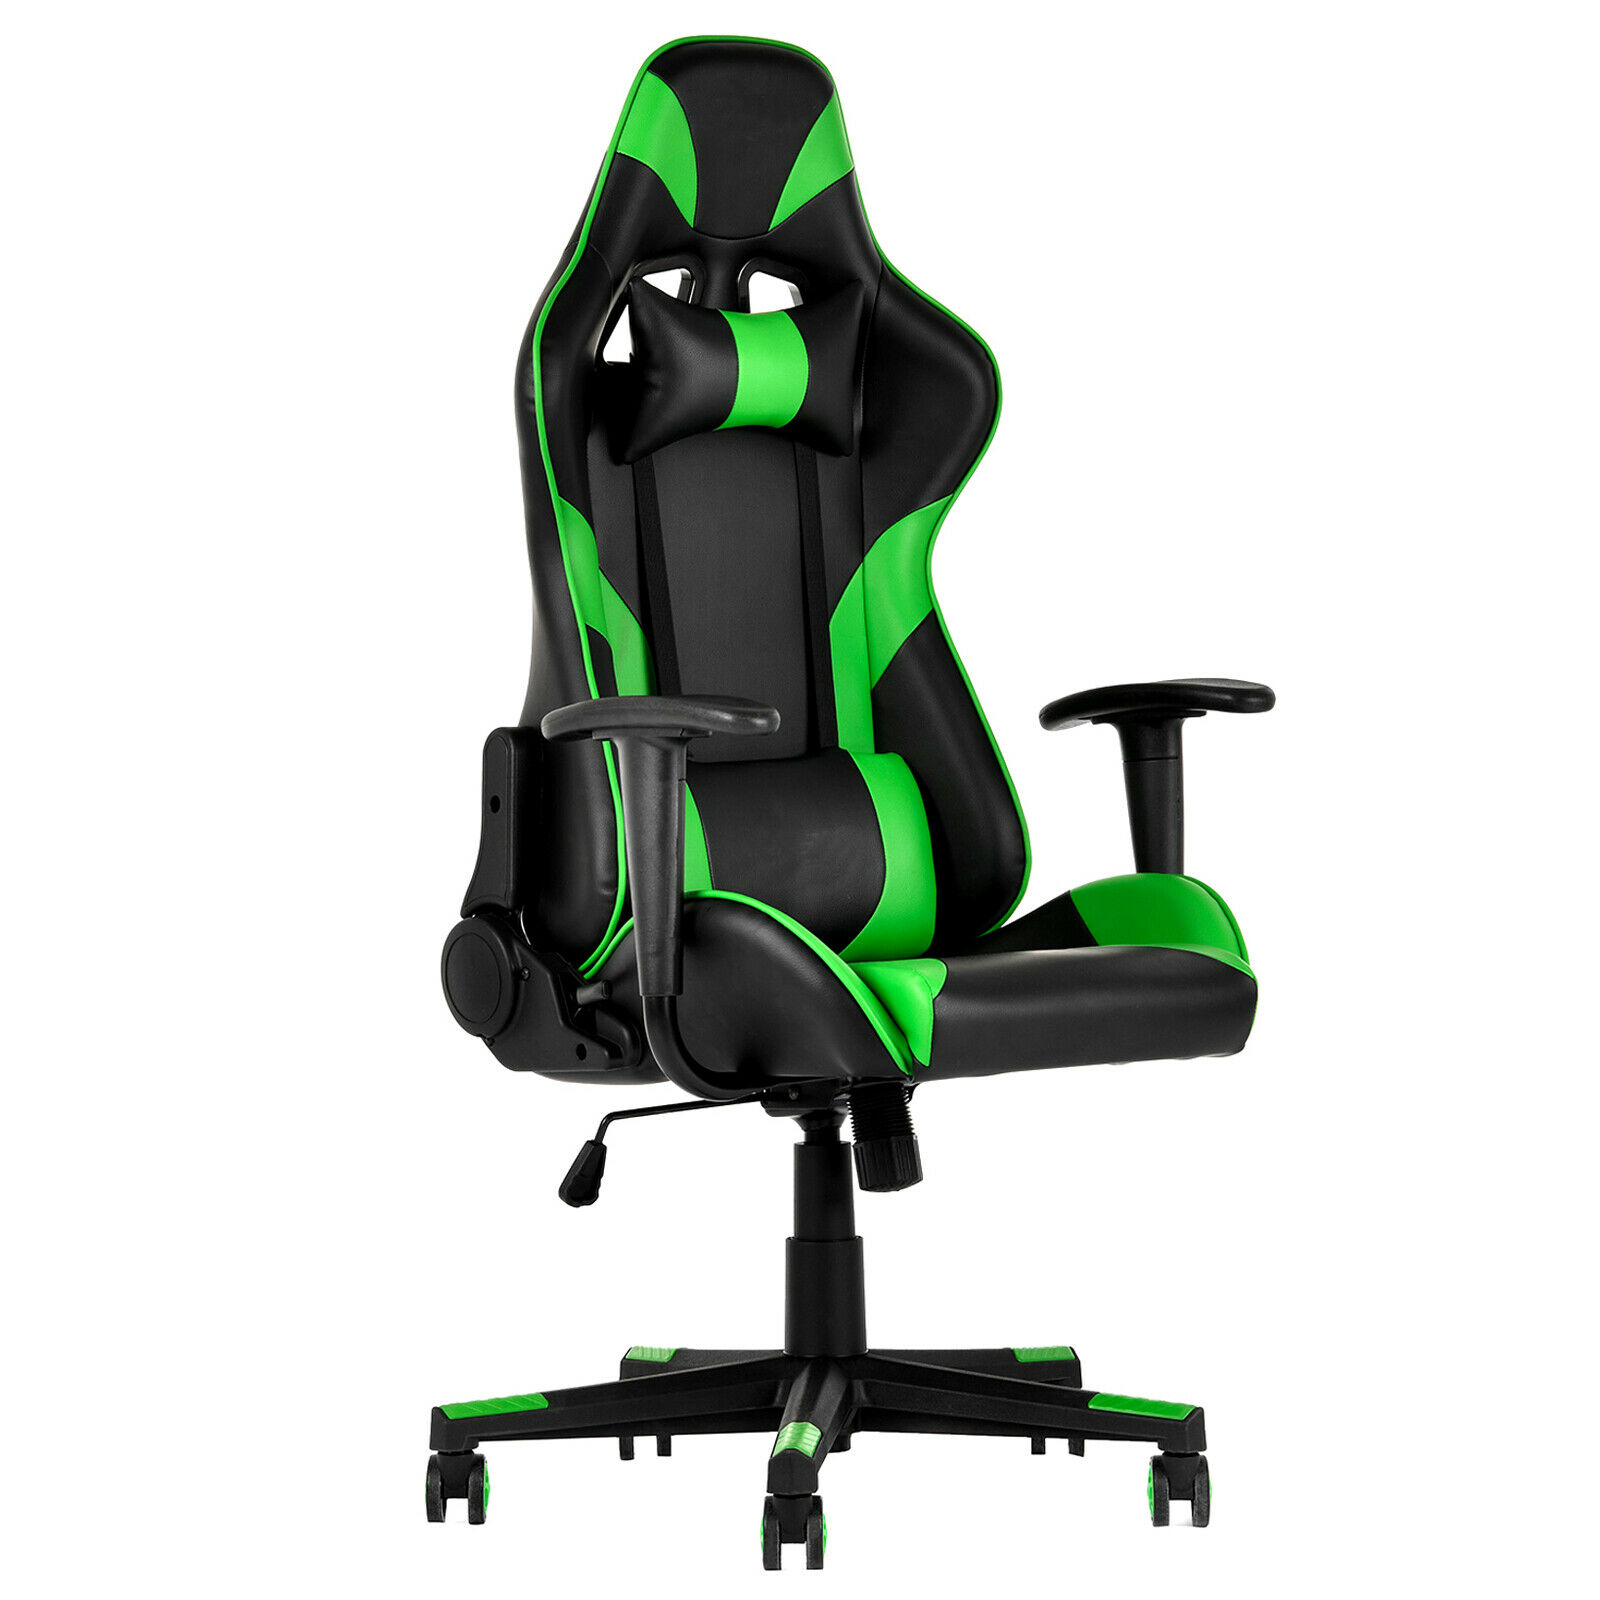 Adjustable Reliner Racing Gaming Office Chair Leather High Back Computer  Chair 1 Of 10FREE Shipping See More